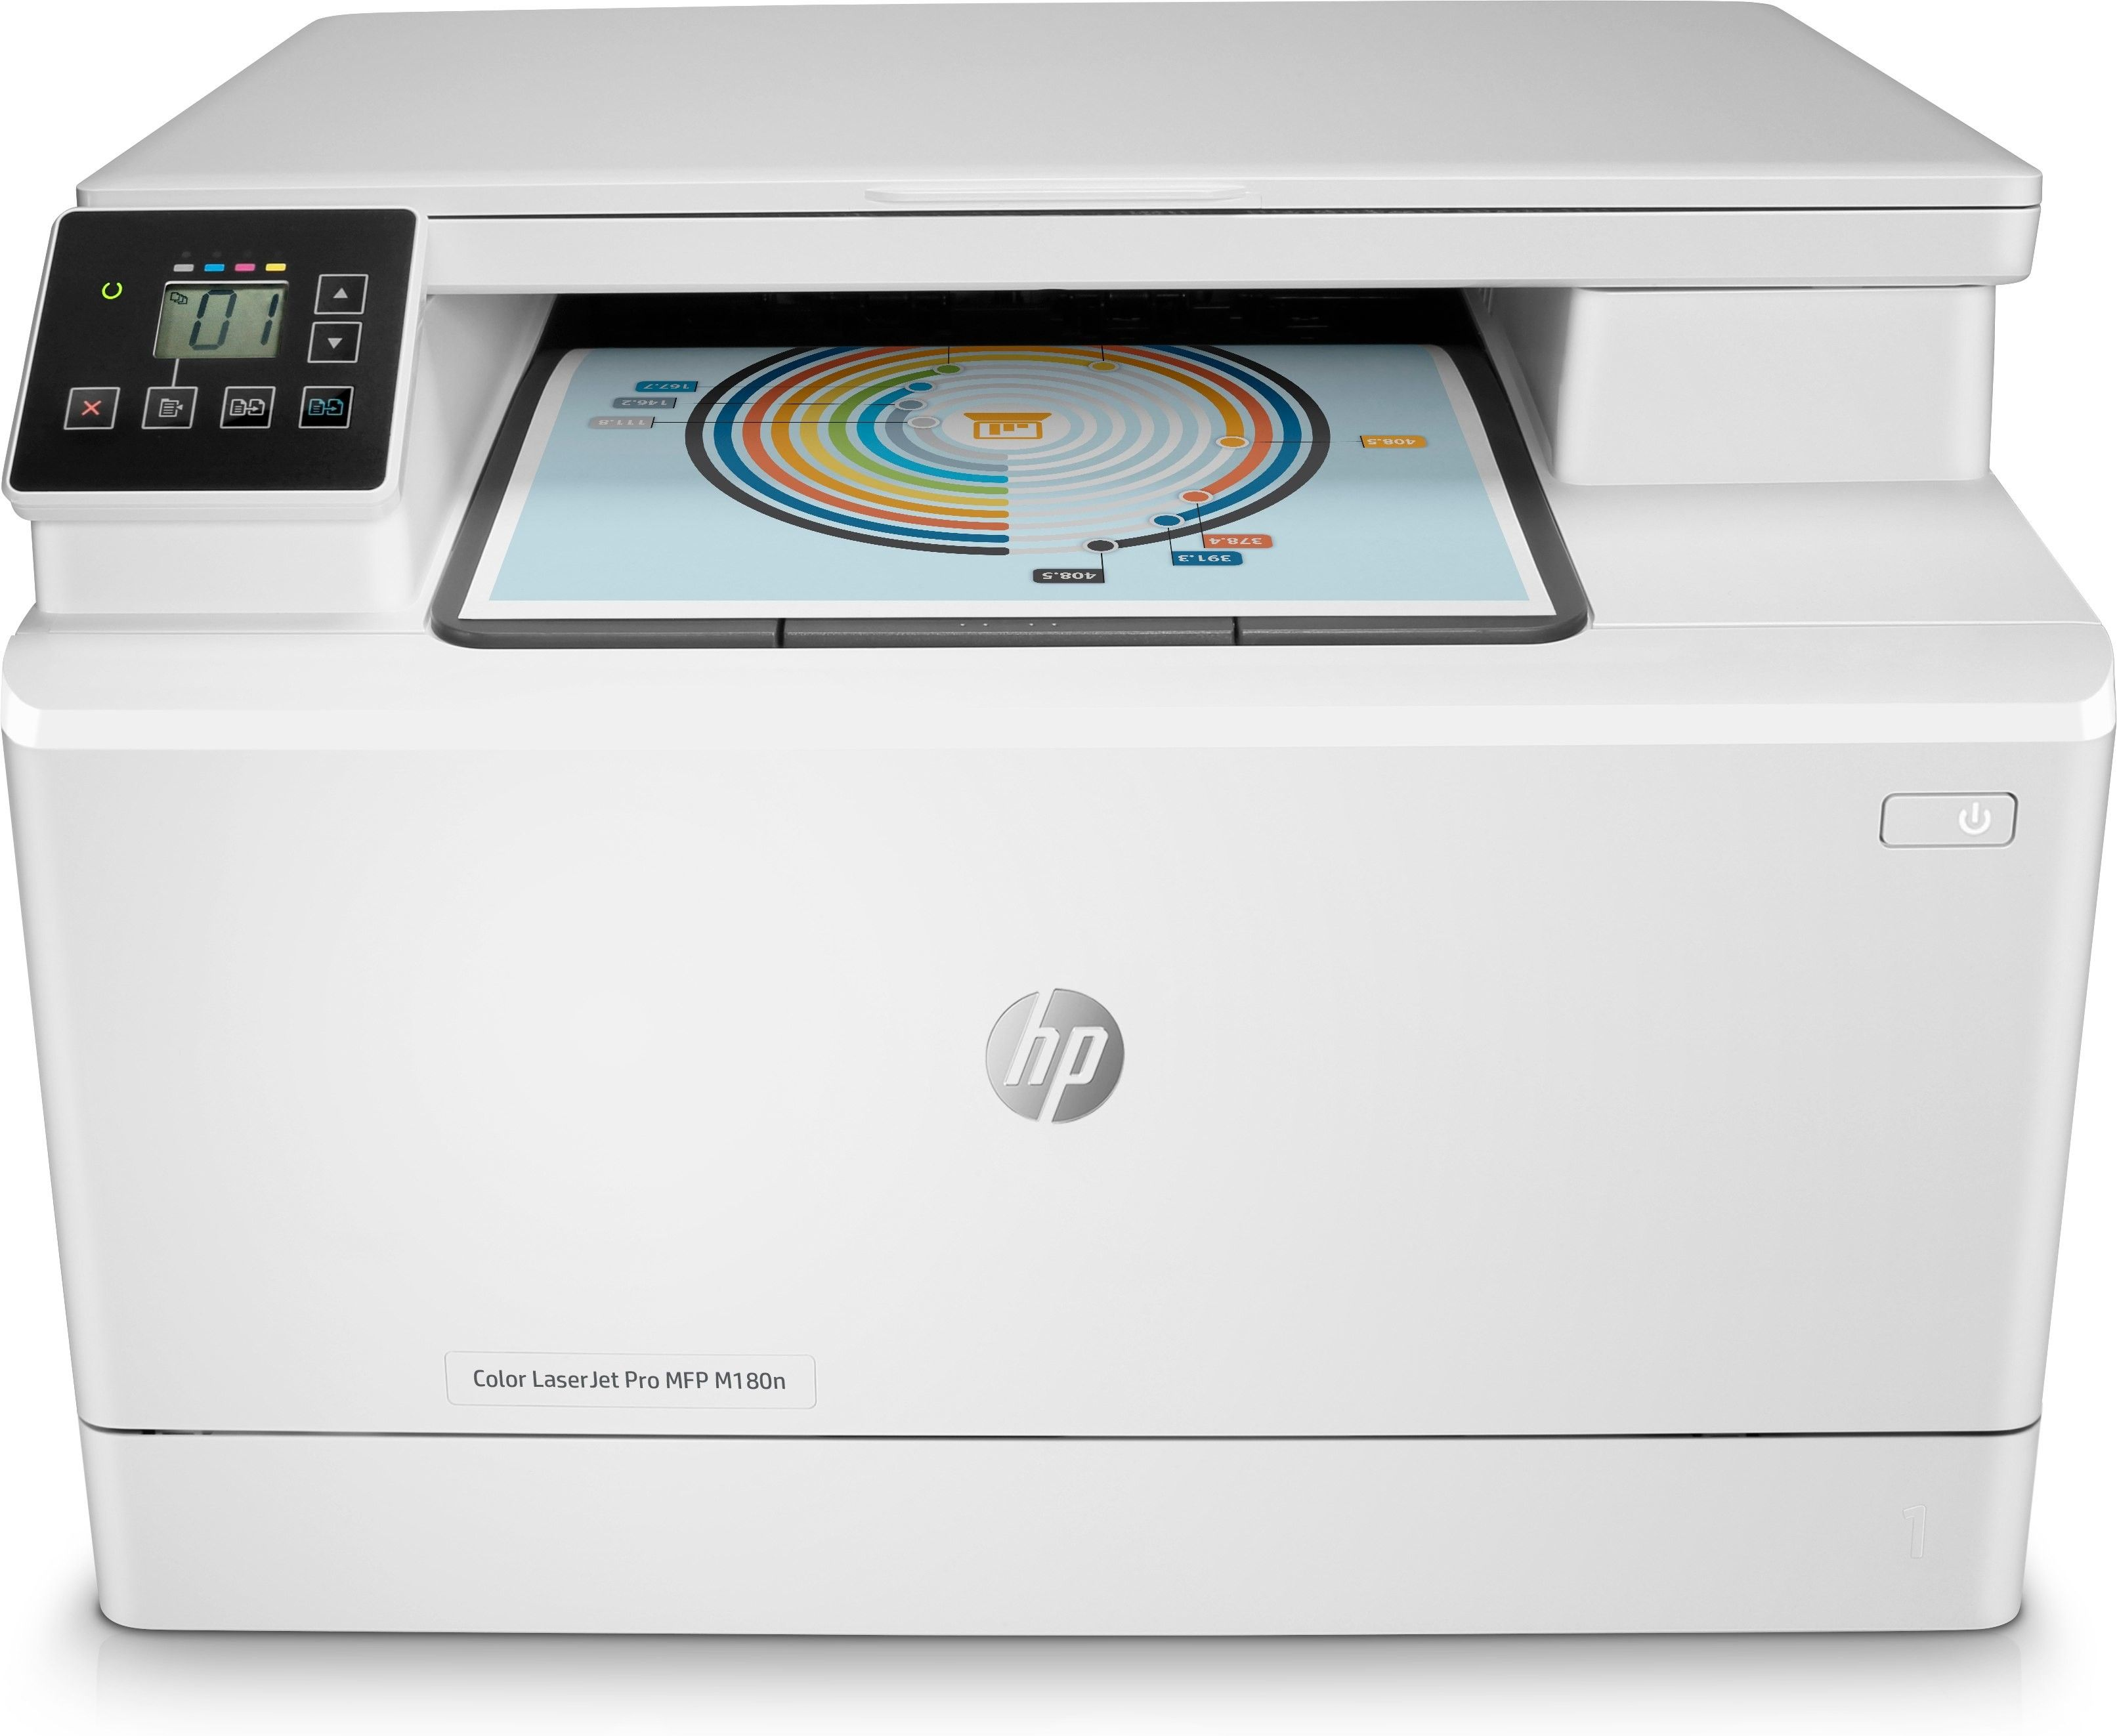 Hp Color Laserjet Pro Mfp M180n Laser A4 225 00 Hp Https Bestbuycyprus Com Printers 20335 Hp Color Las Color Cool Things To Buy Packing Tips For Travel